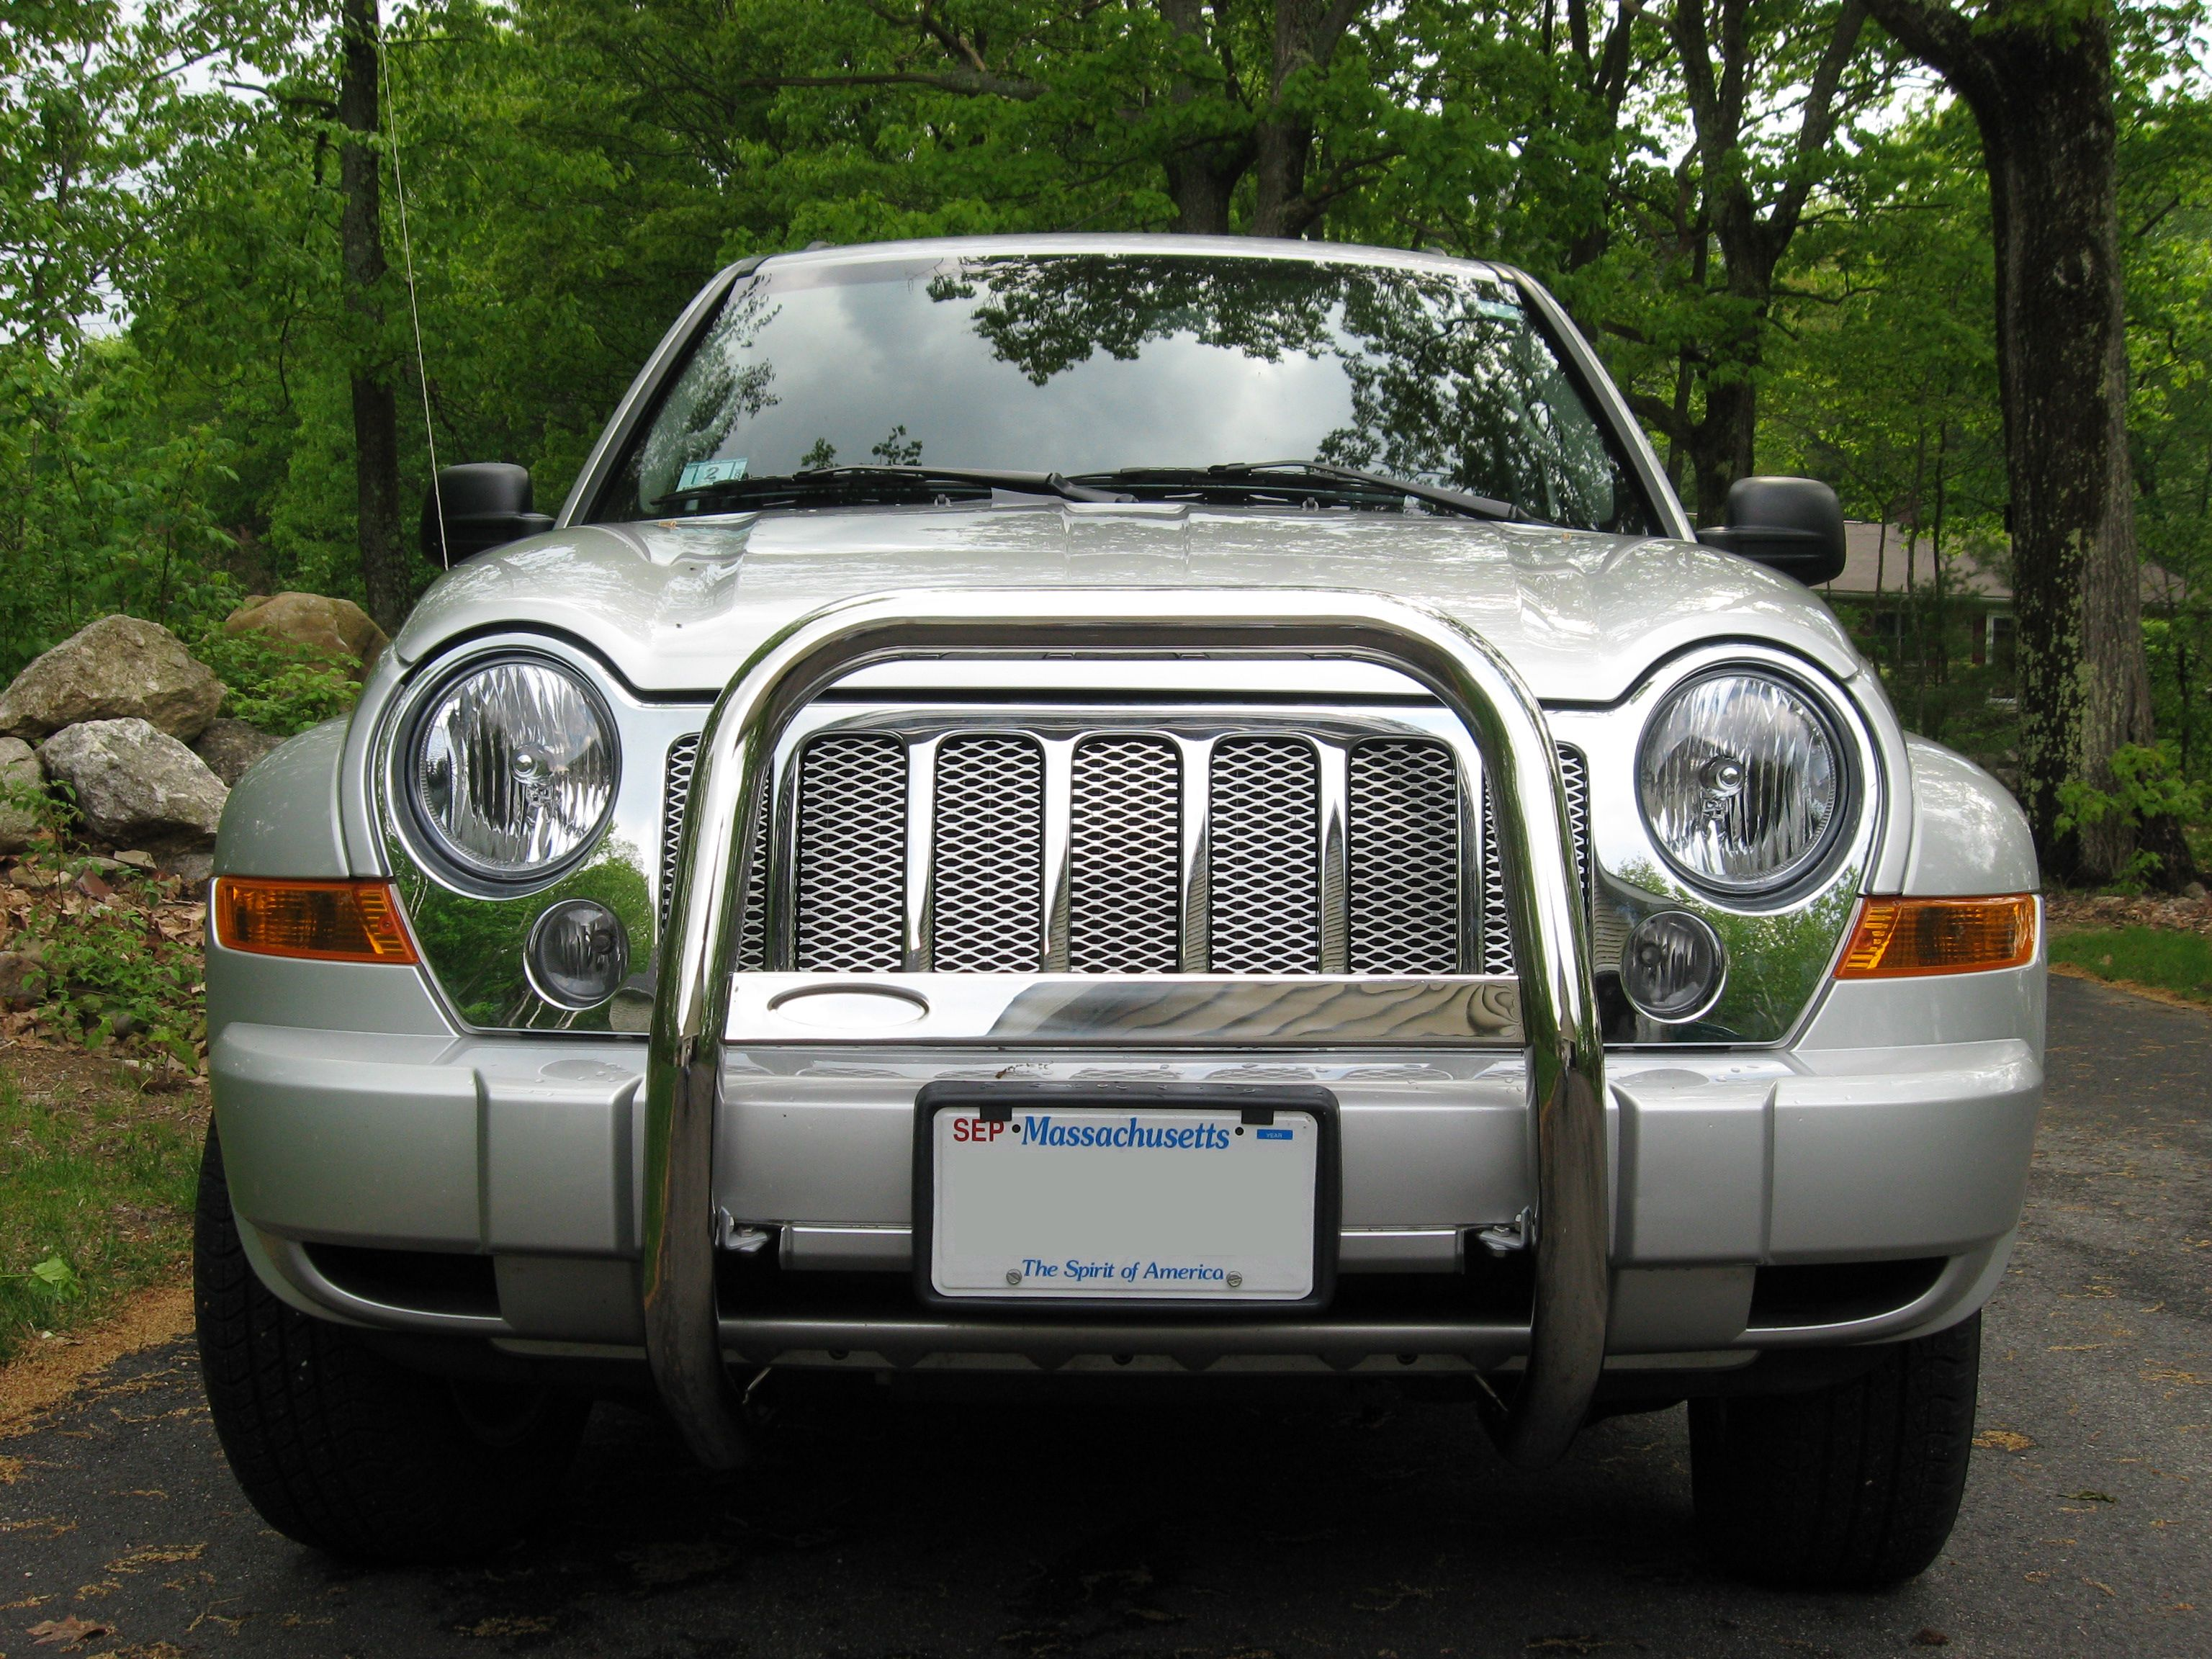 2007 Jeep Liberty Expanded Aluminum Grille Overlays Chrome Bull